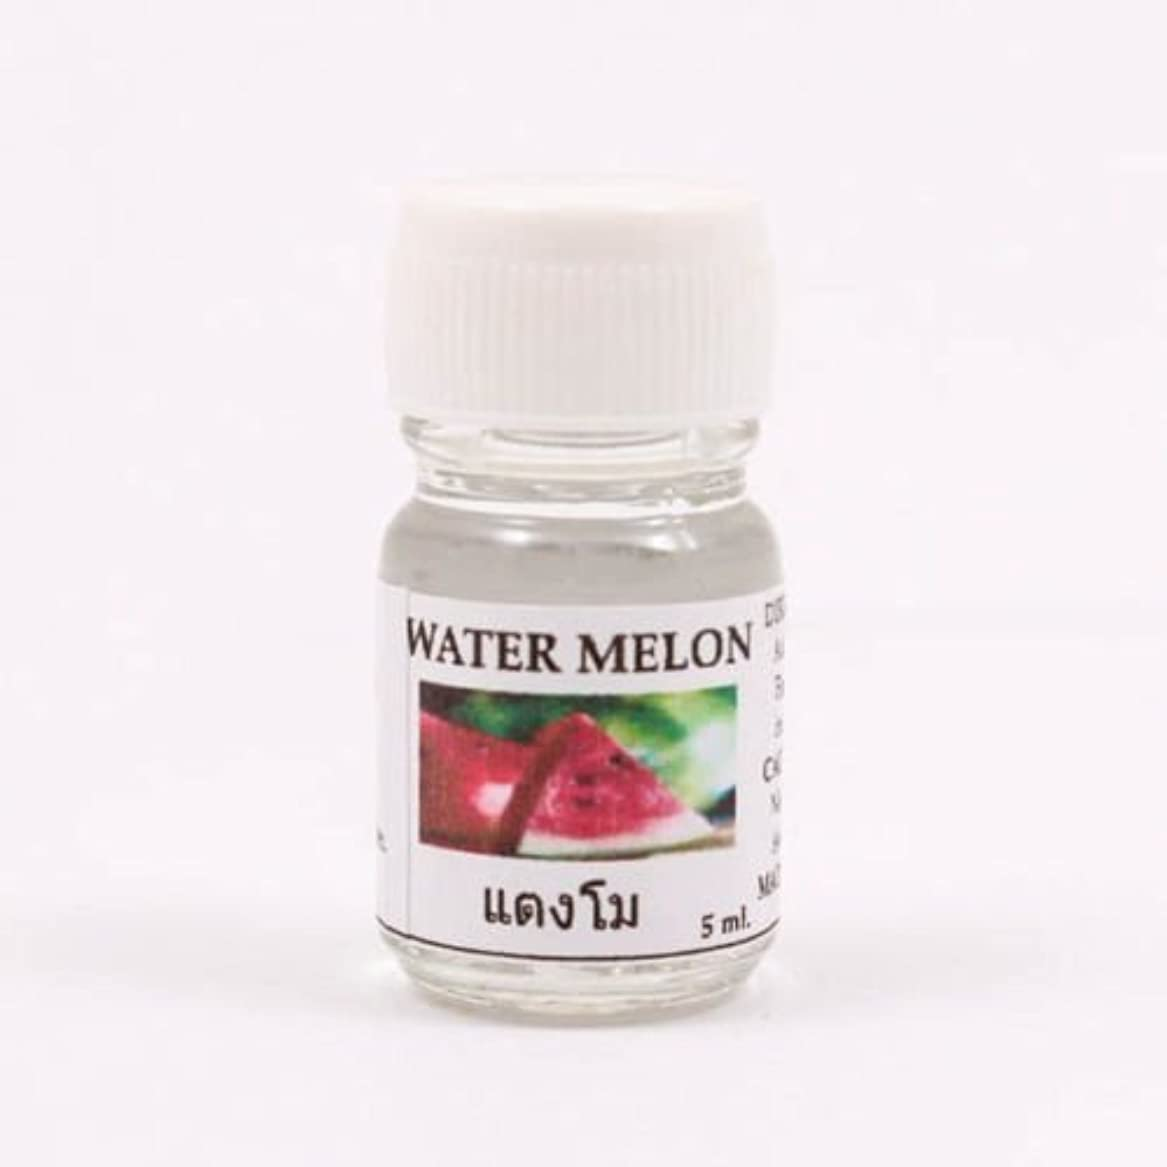 6X Water Melon Aroma Fragrance Essential Oil 5ML Diffuser Burner Therapy